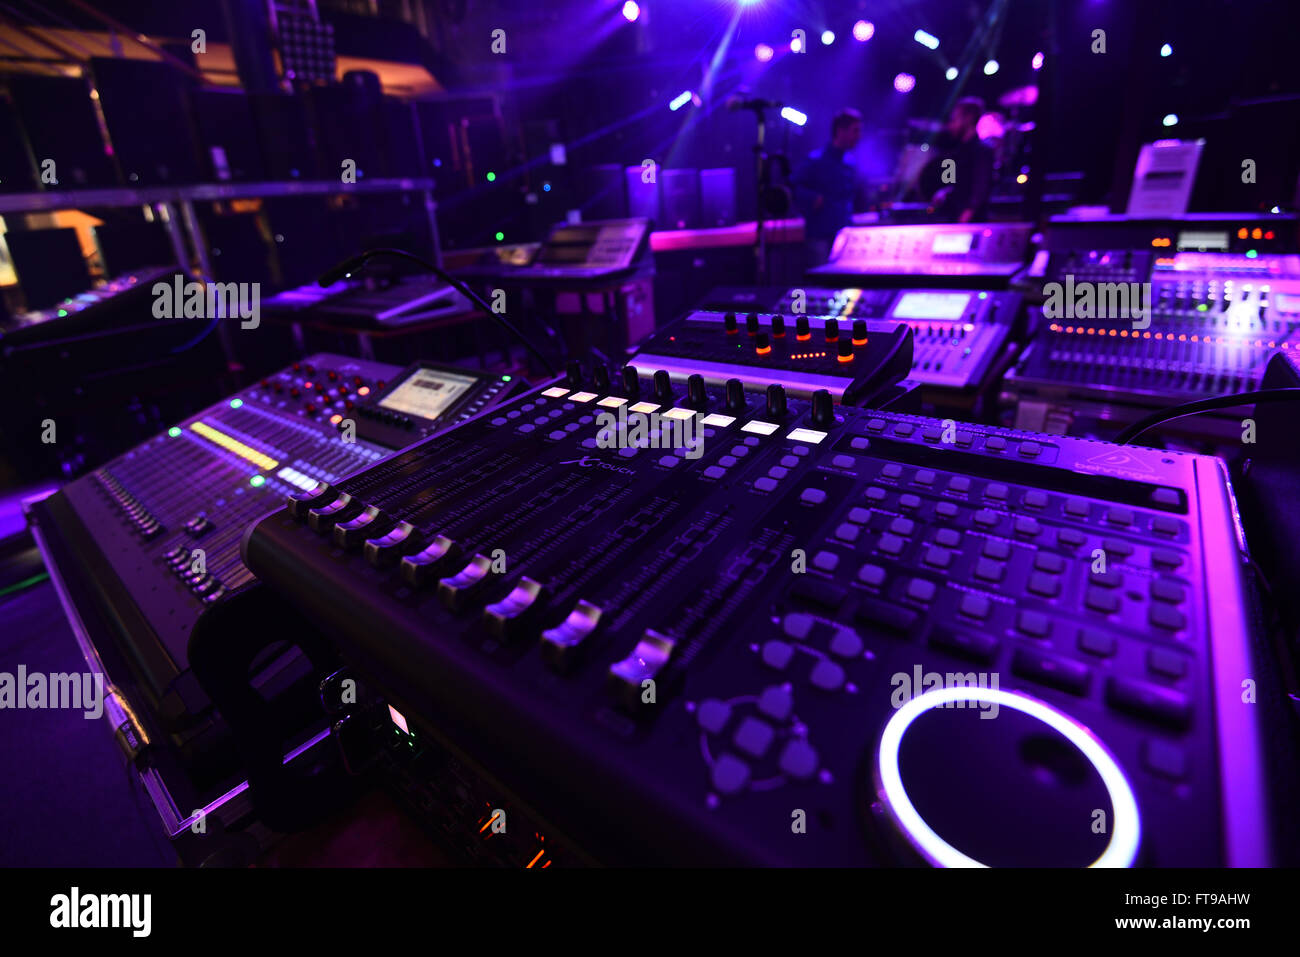 Treppendorf, Germany. 24th Mar, 2016. Several mixing boards can be seen in the Musikhaus Thomann in Treppendorf, - Stock Image